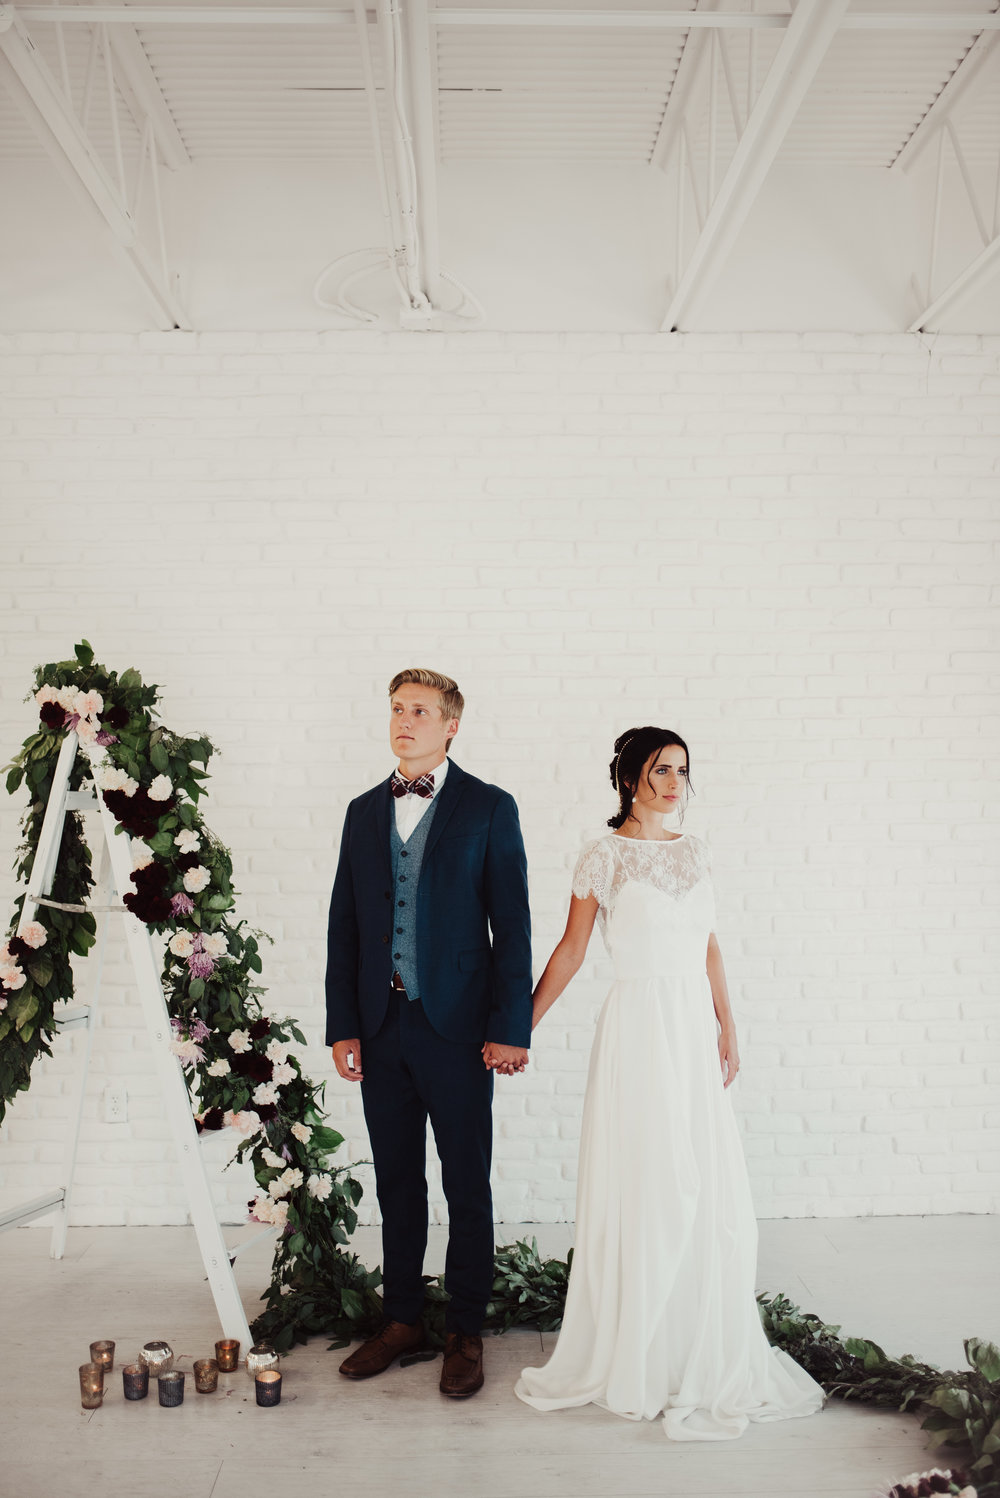 floral-wedding-garland-on-ladder-backdrop.jpg